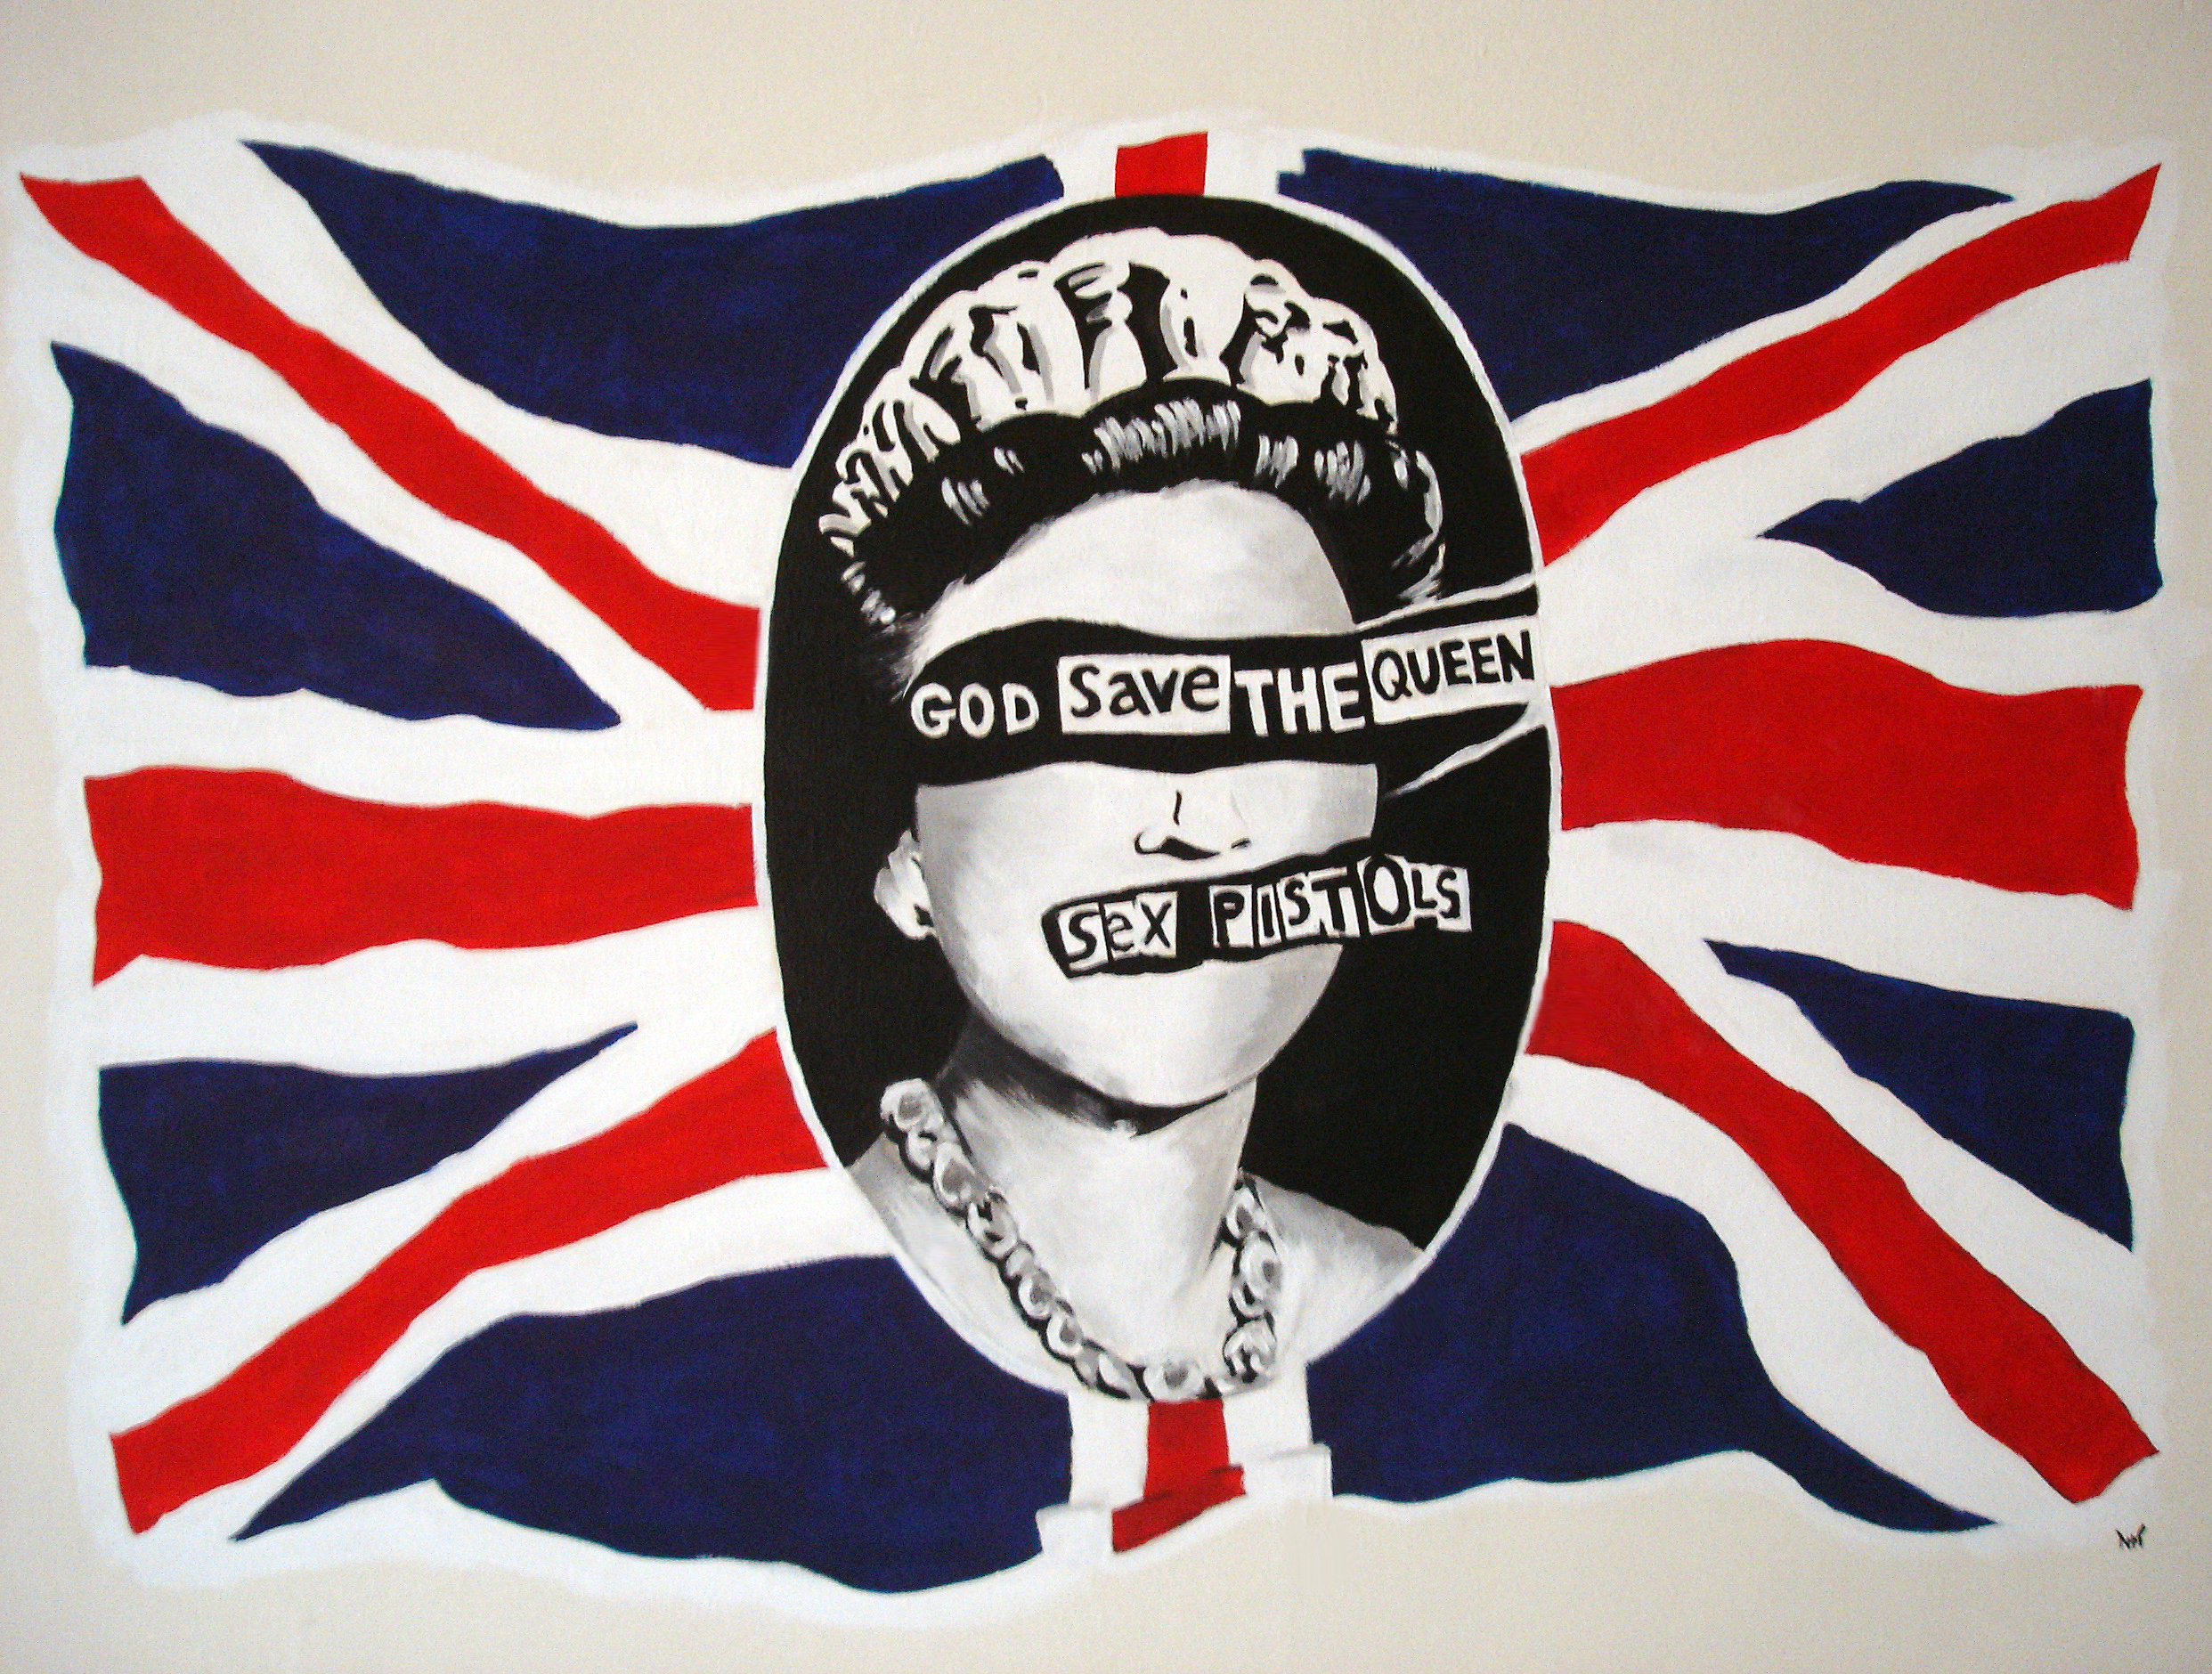 Opinions On God Save The Queen